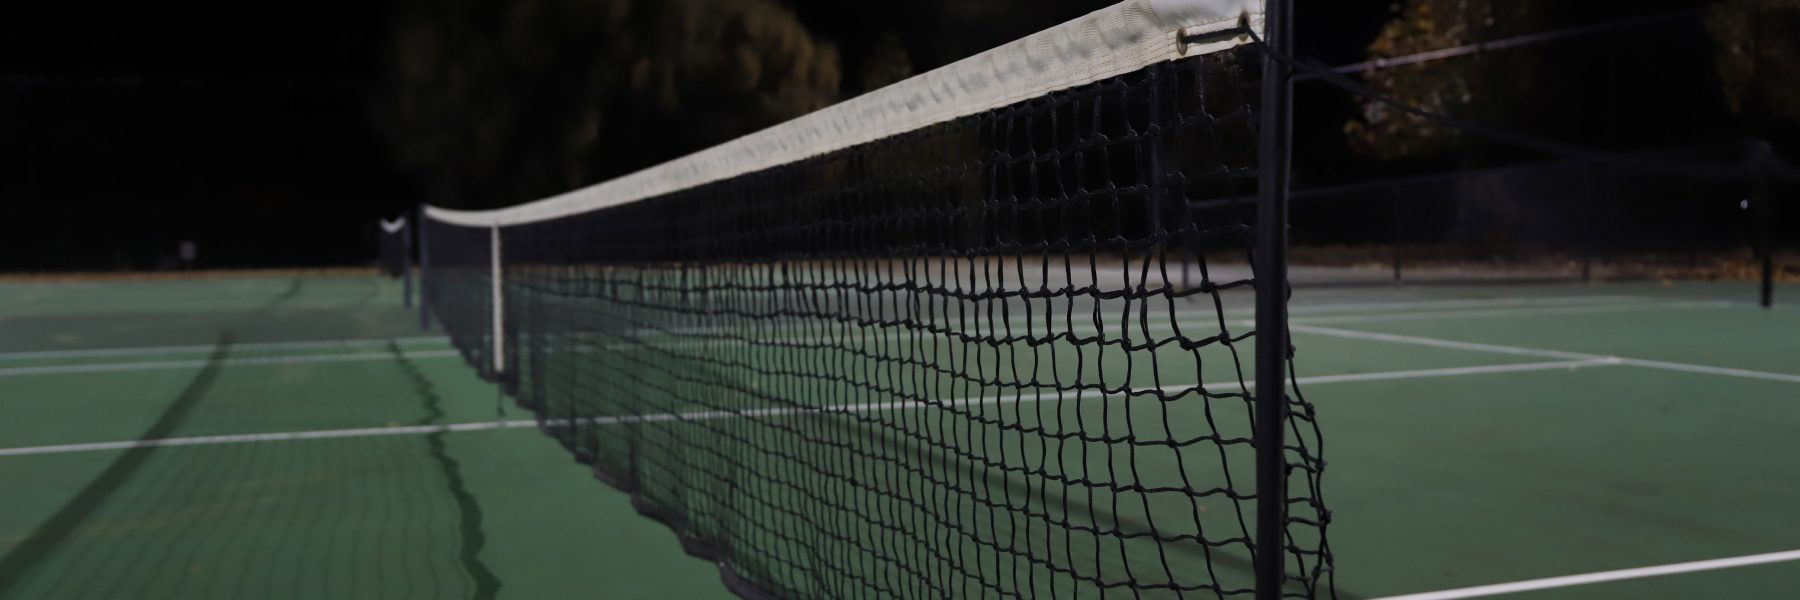 Tennis Courts 1 MG 9841